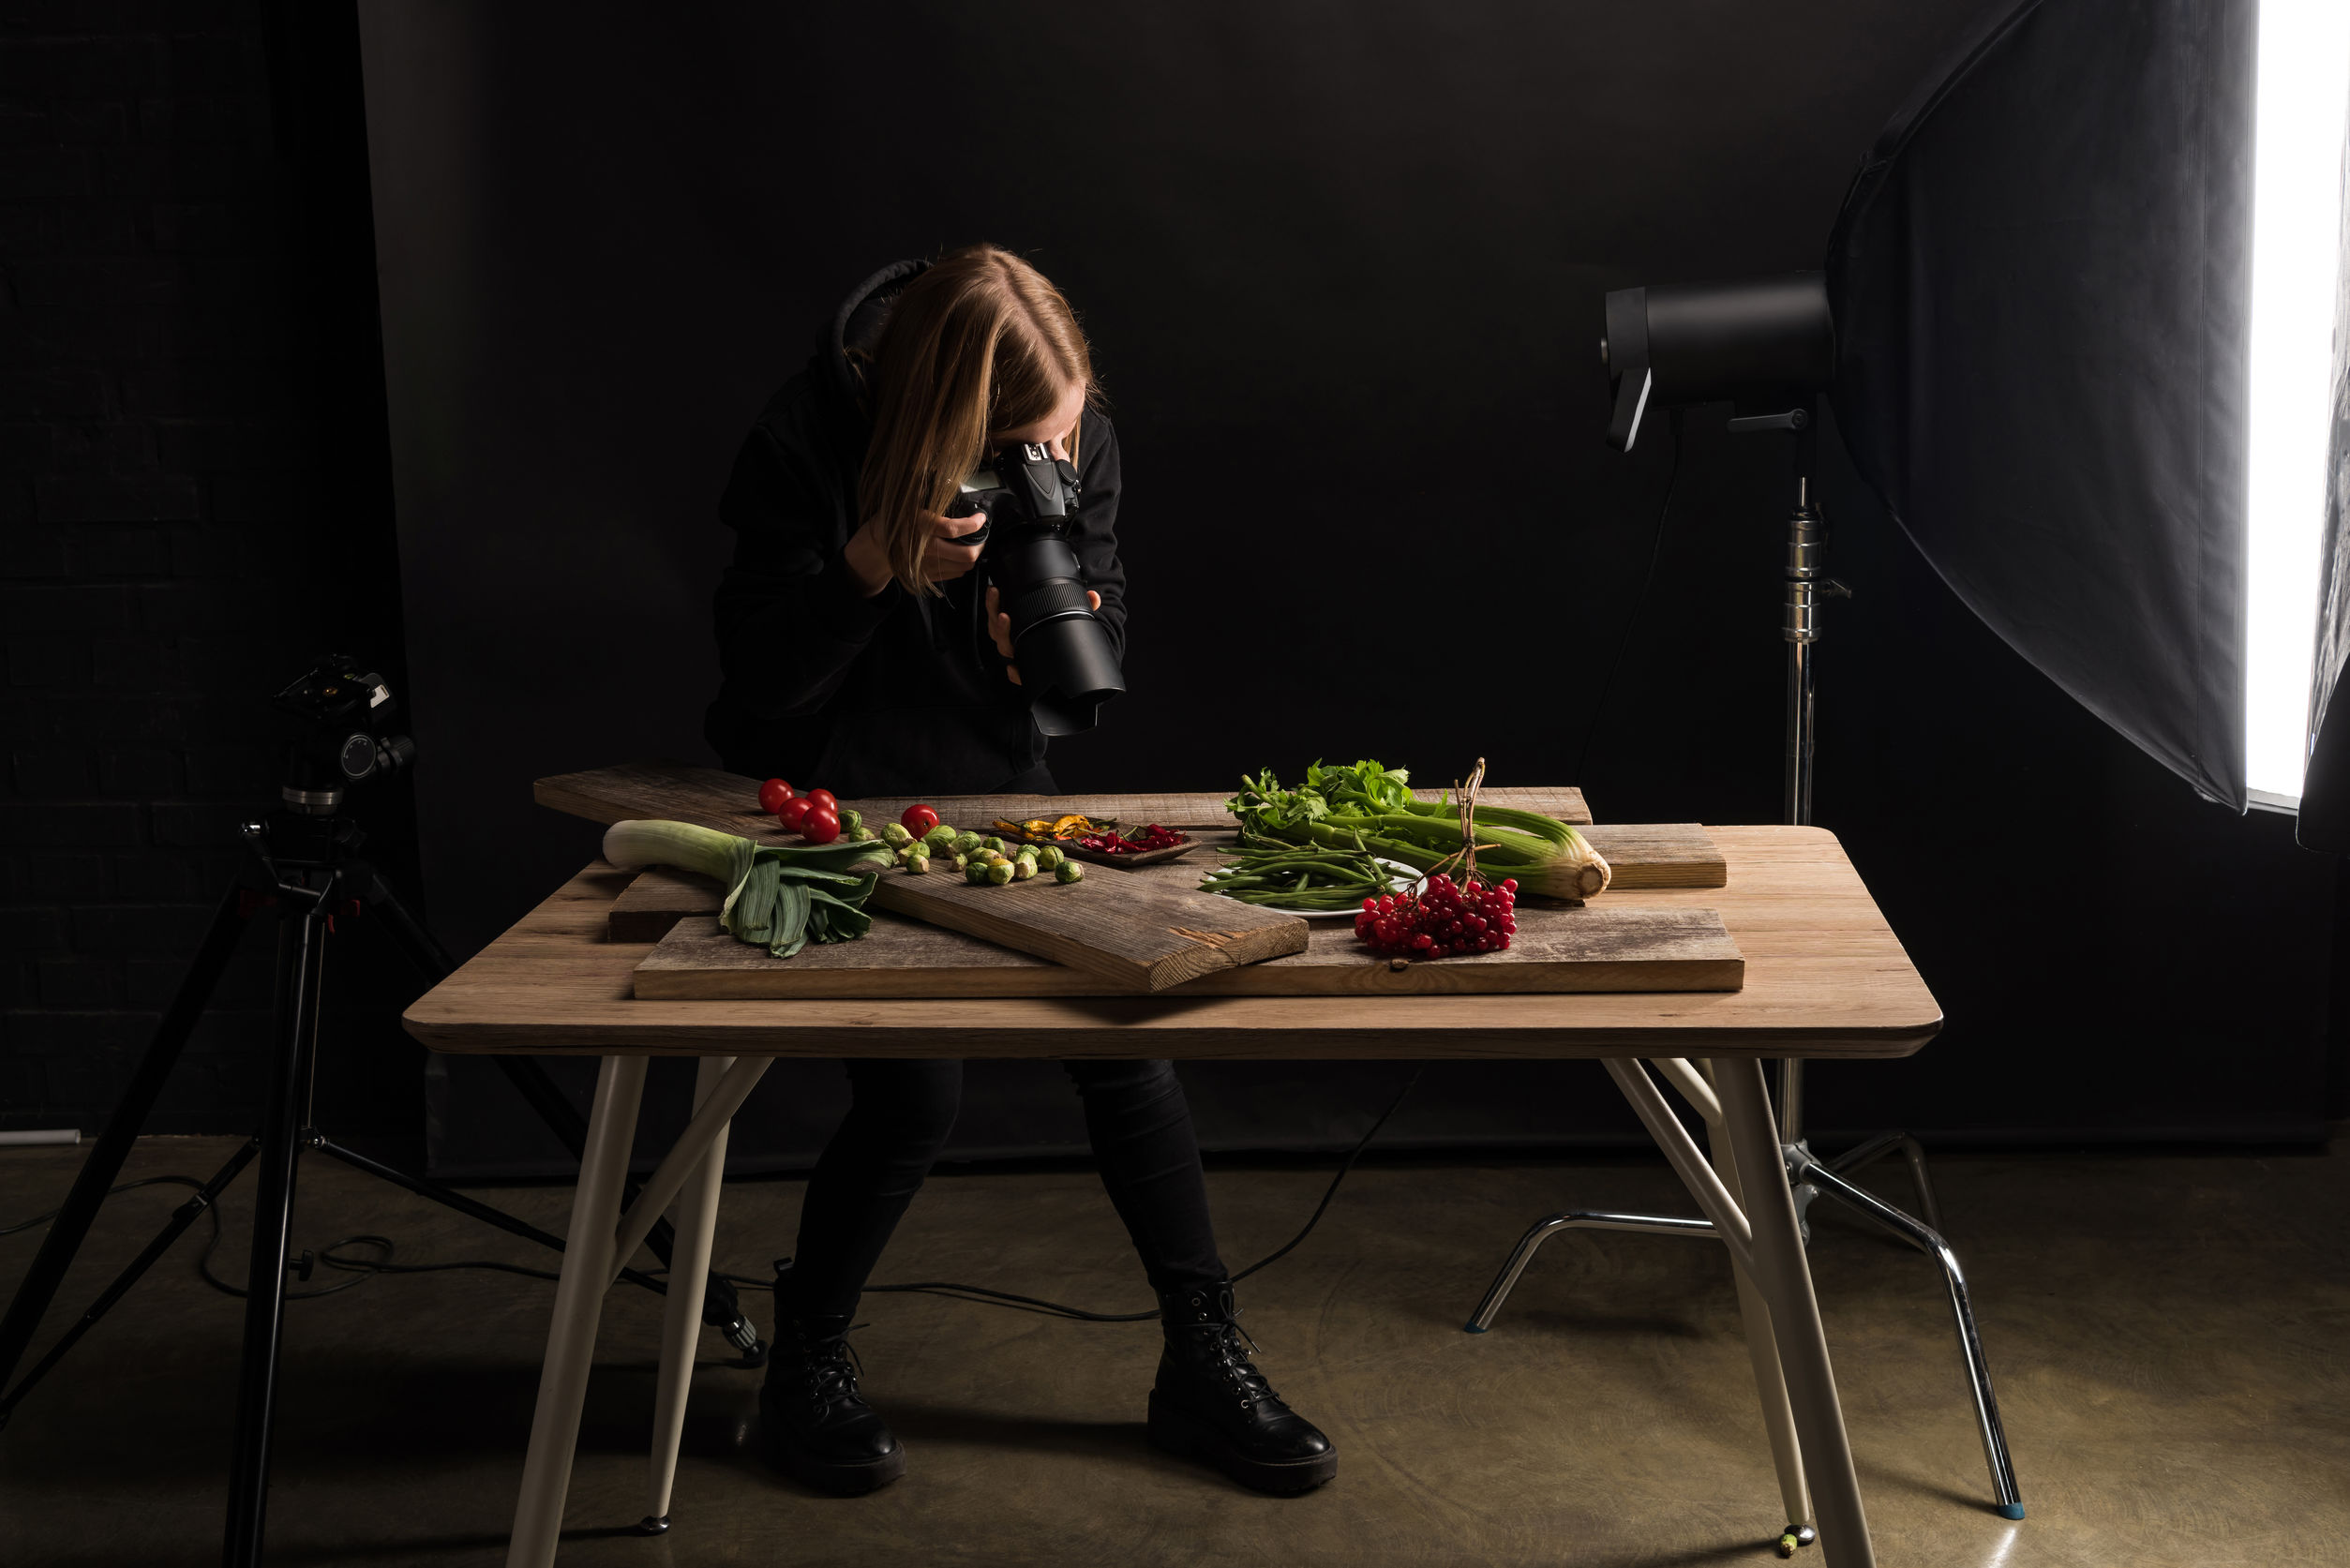 How To Build A Food Photography Setup